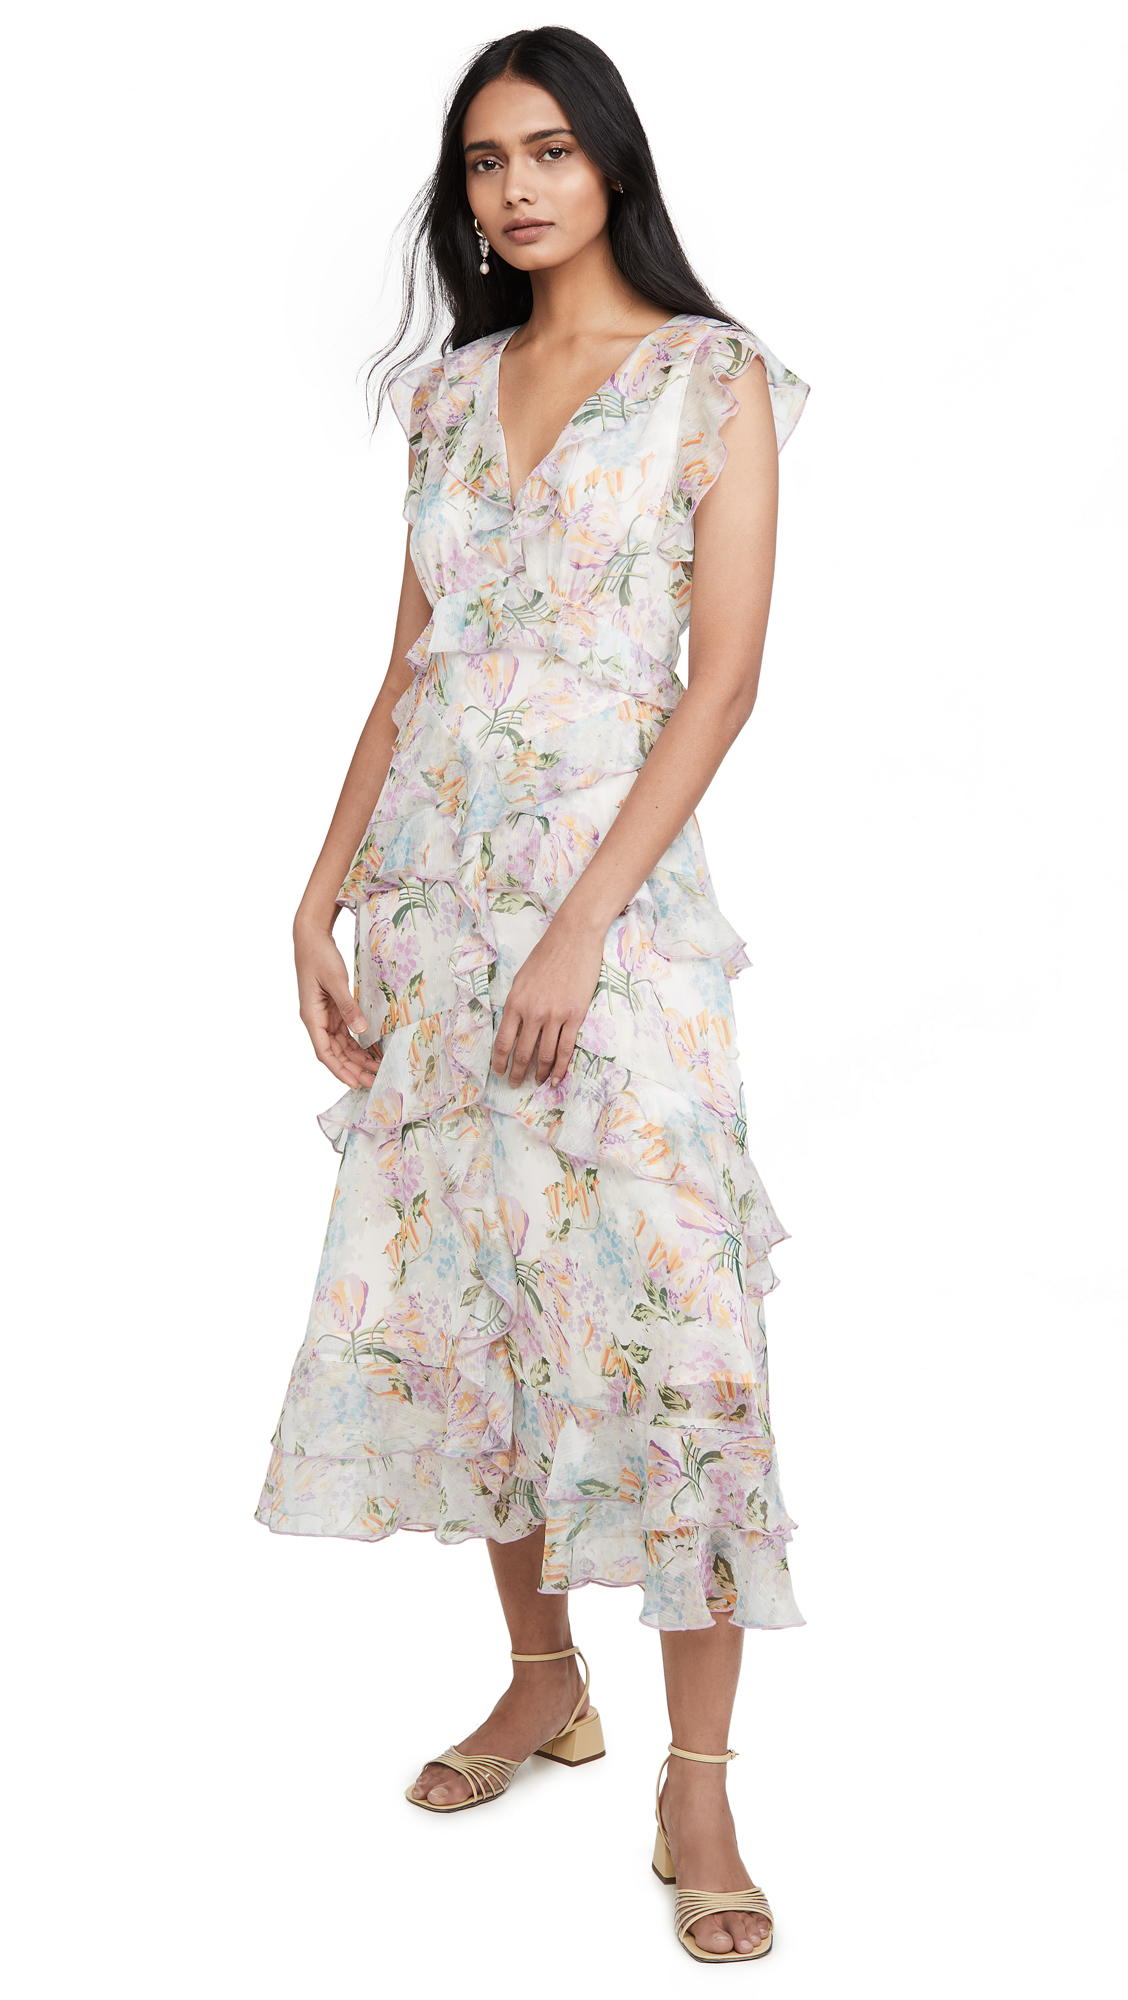 OPT Malle Dress - 30% Off Sale